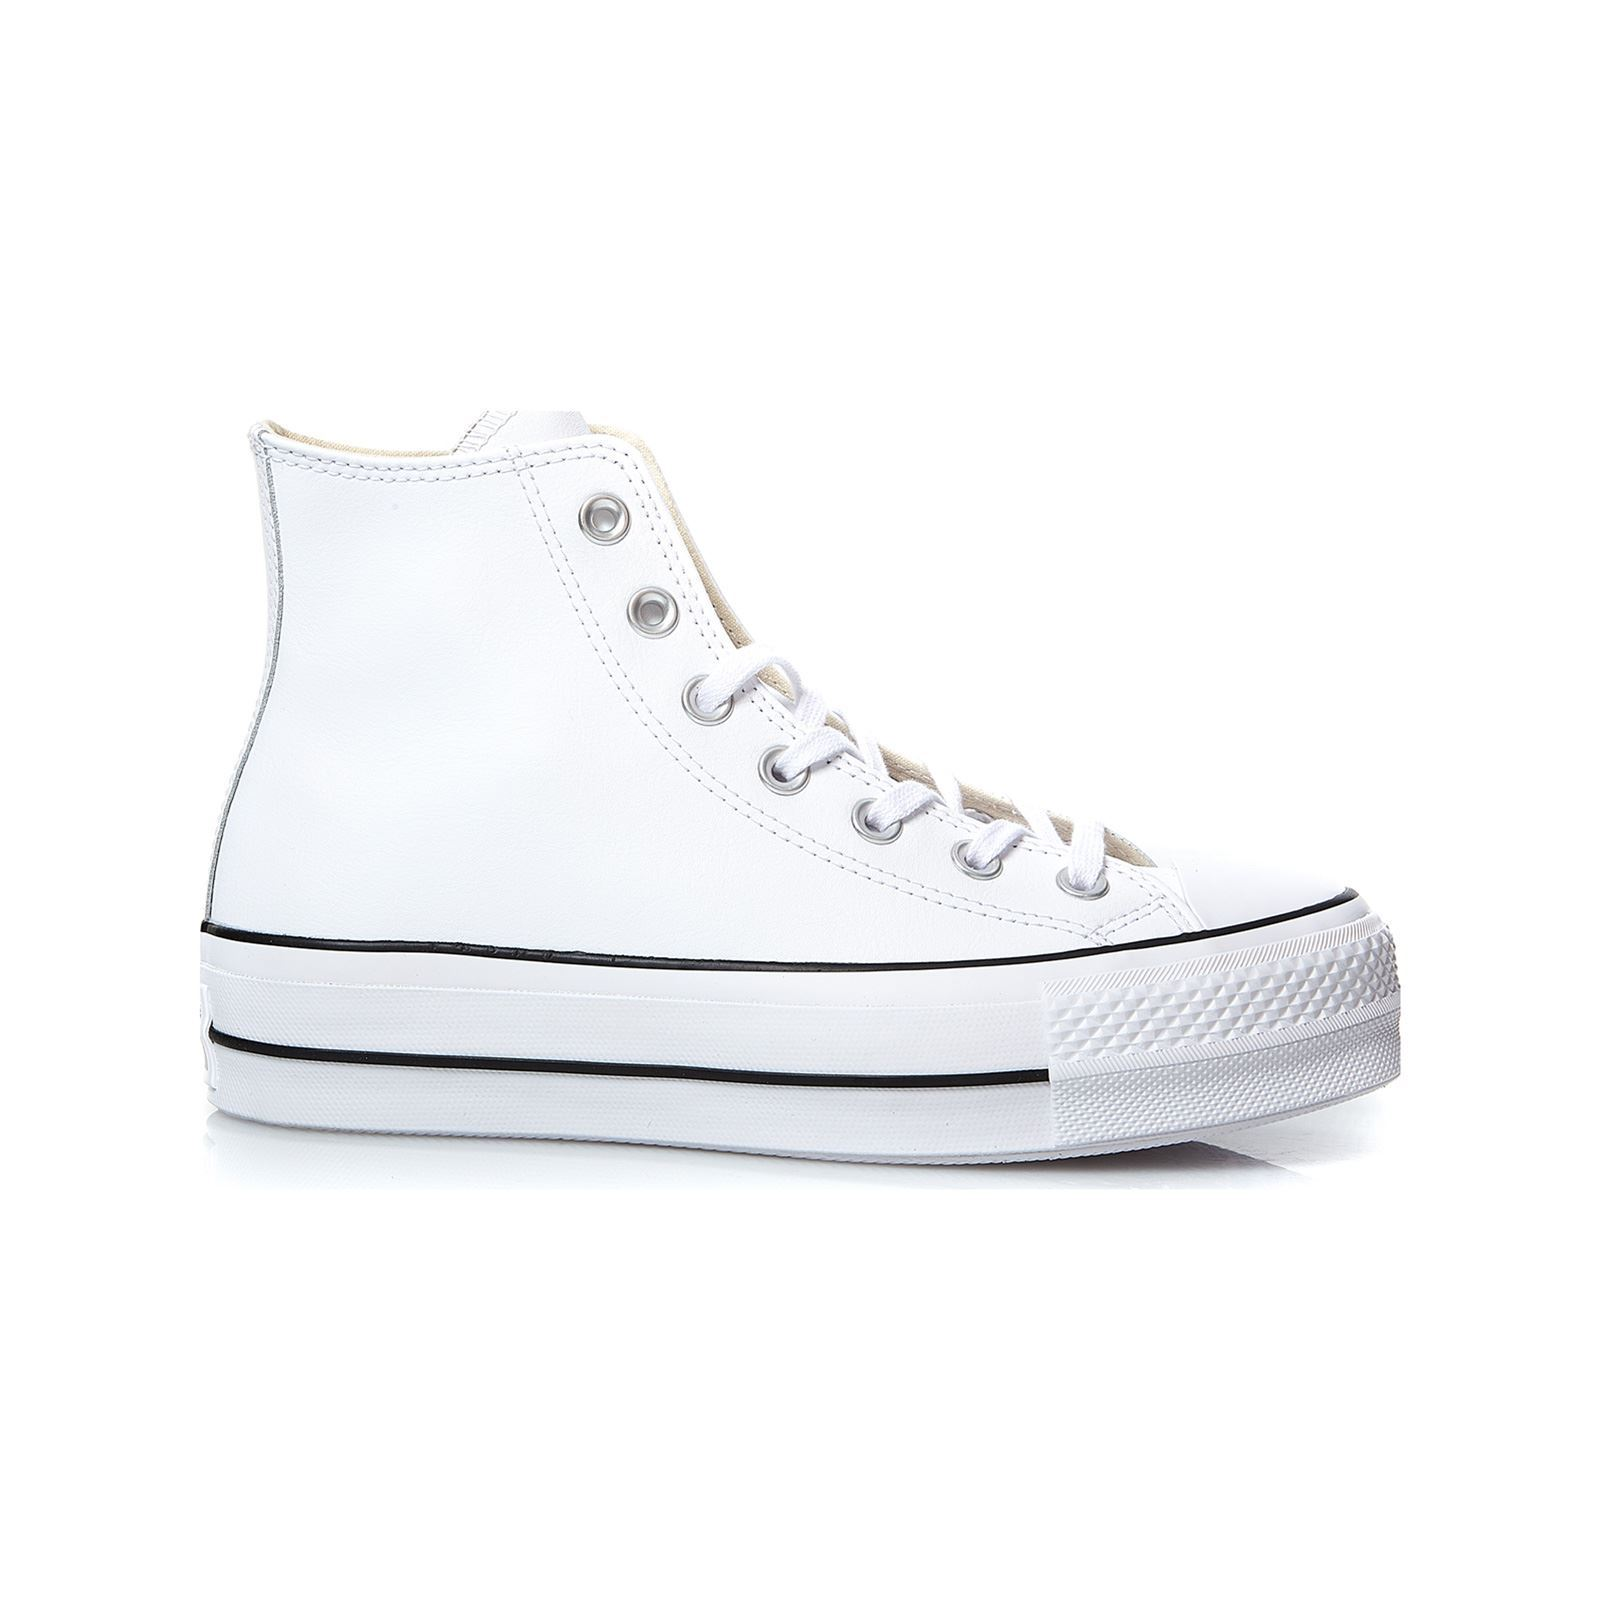 how to clean clear converse